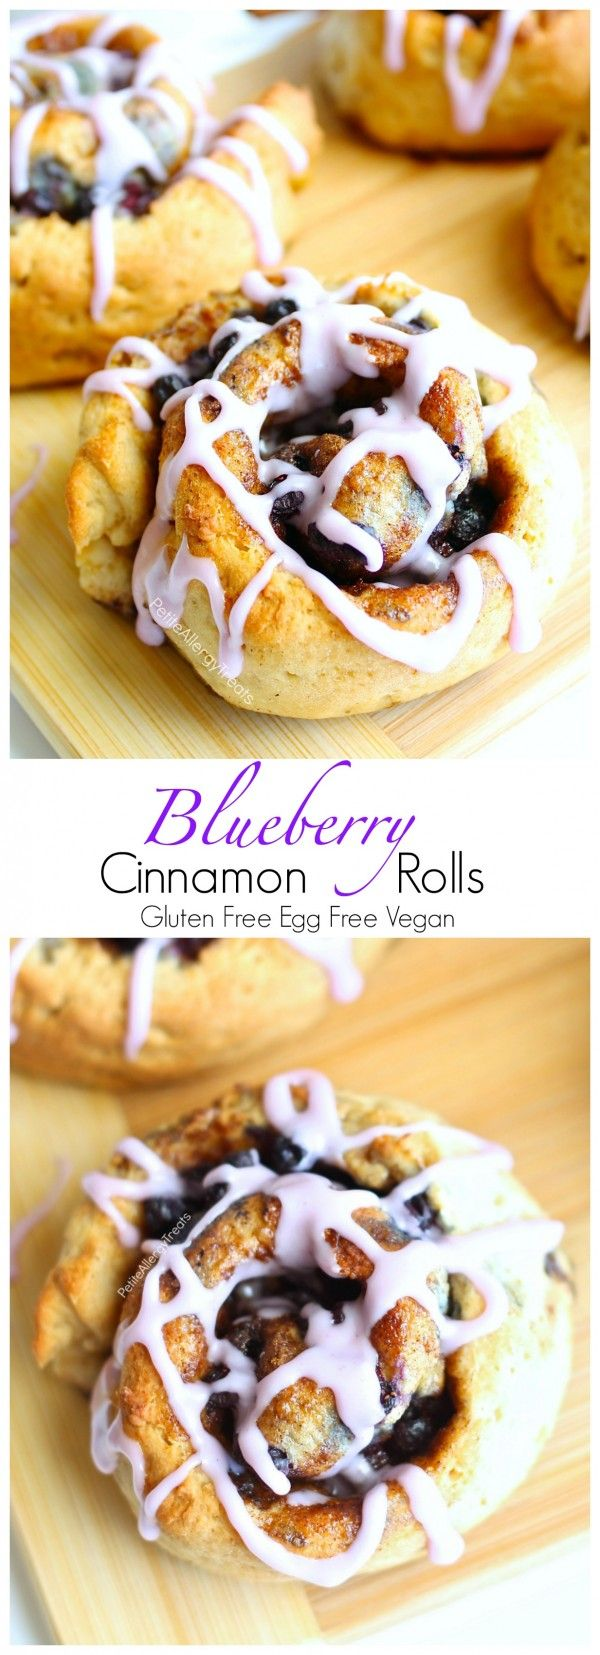 Gluten Free Blueberry Cinnamon Rolls Recipe (Gluten Free Vegan dairy free egg free)- Soft and sweet gluten free cinnamon buns with real blueberries. Hard to believe they are dairy free and food allergy friendly too!